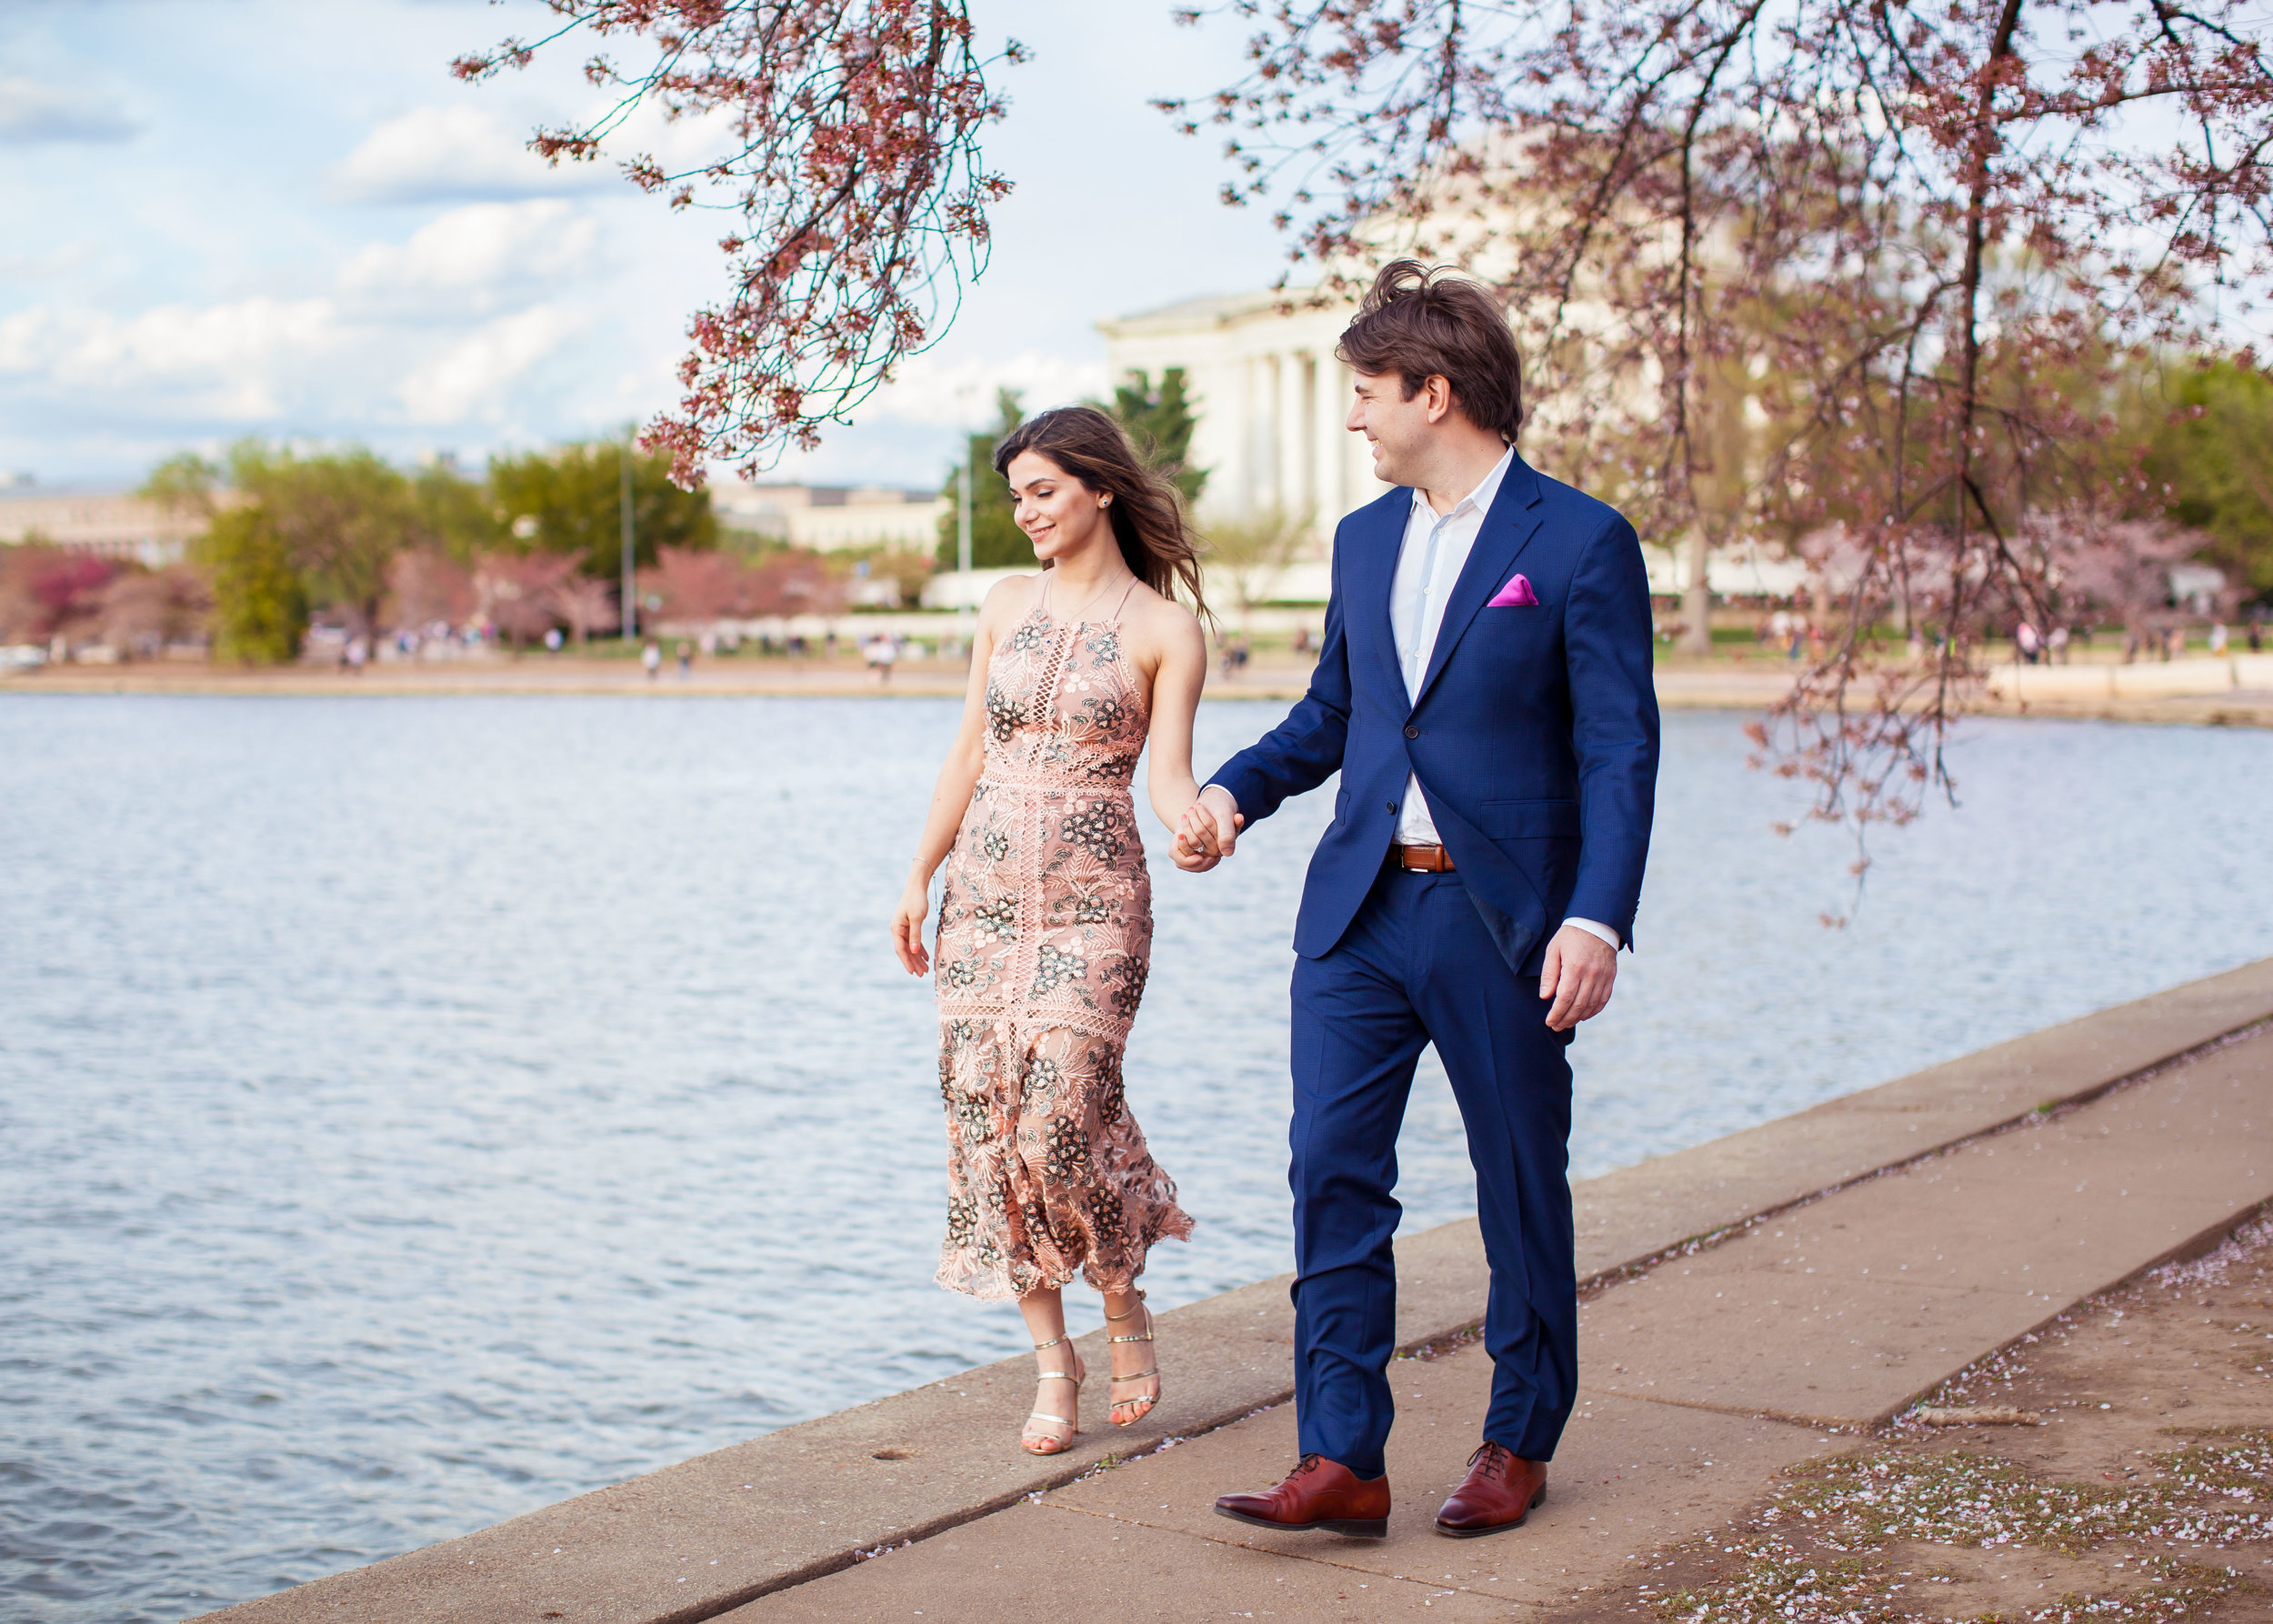 Hannah & Joe Cherry Blossom Engagement - 003.jpg